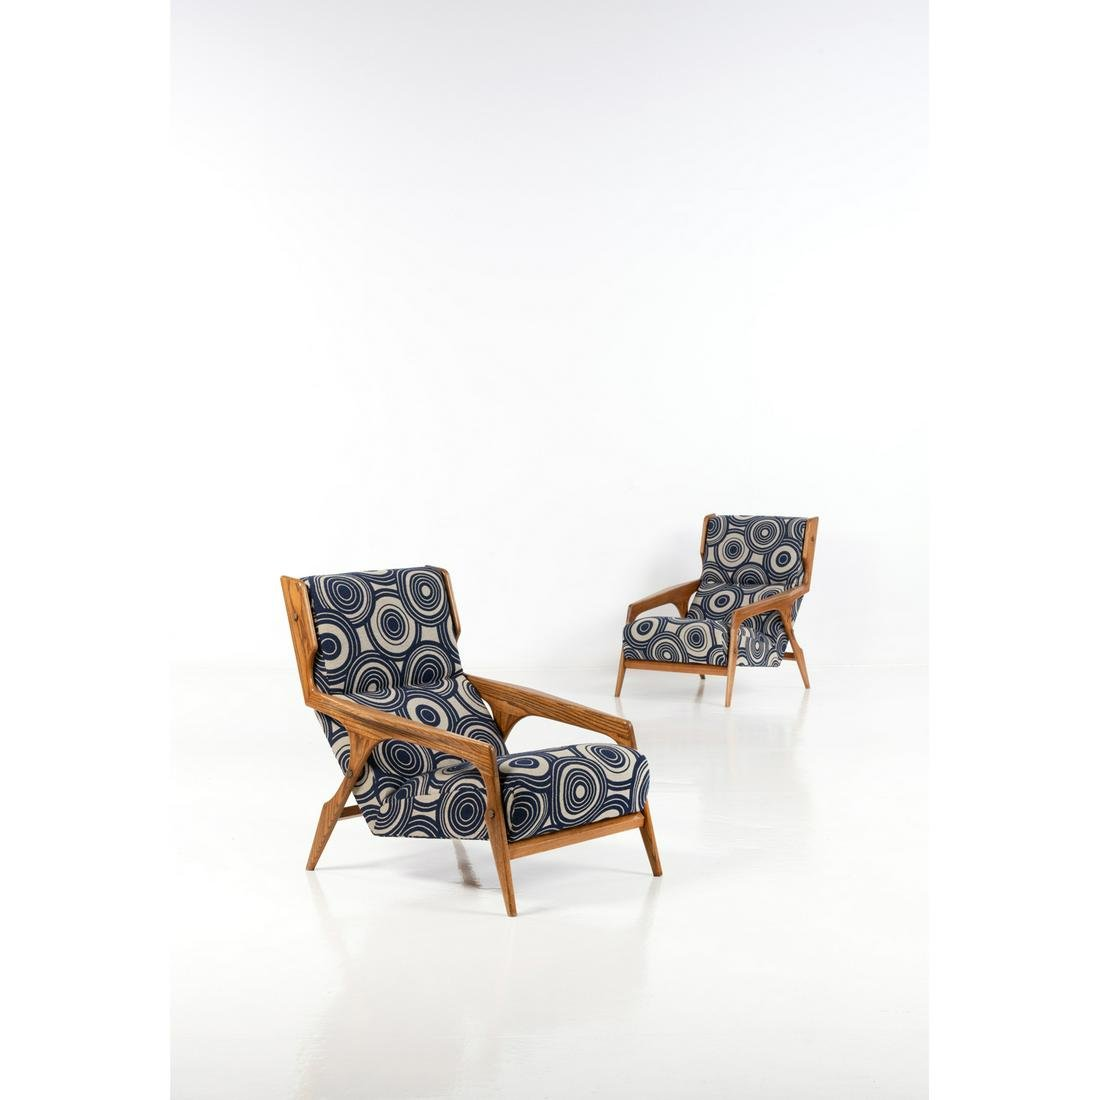 Gio Ponti (1891-1979) Pair of armchairs Wood and fabric